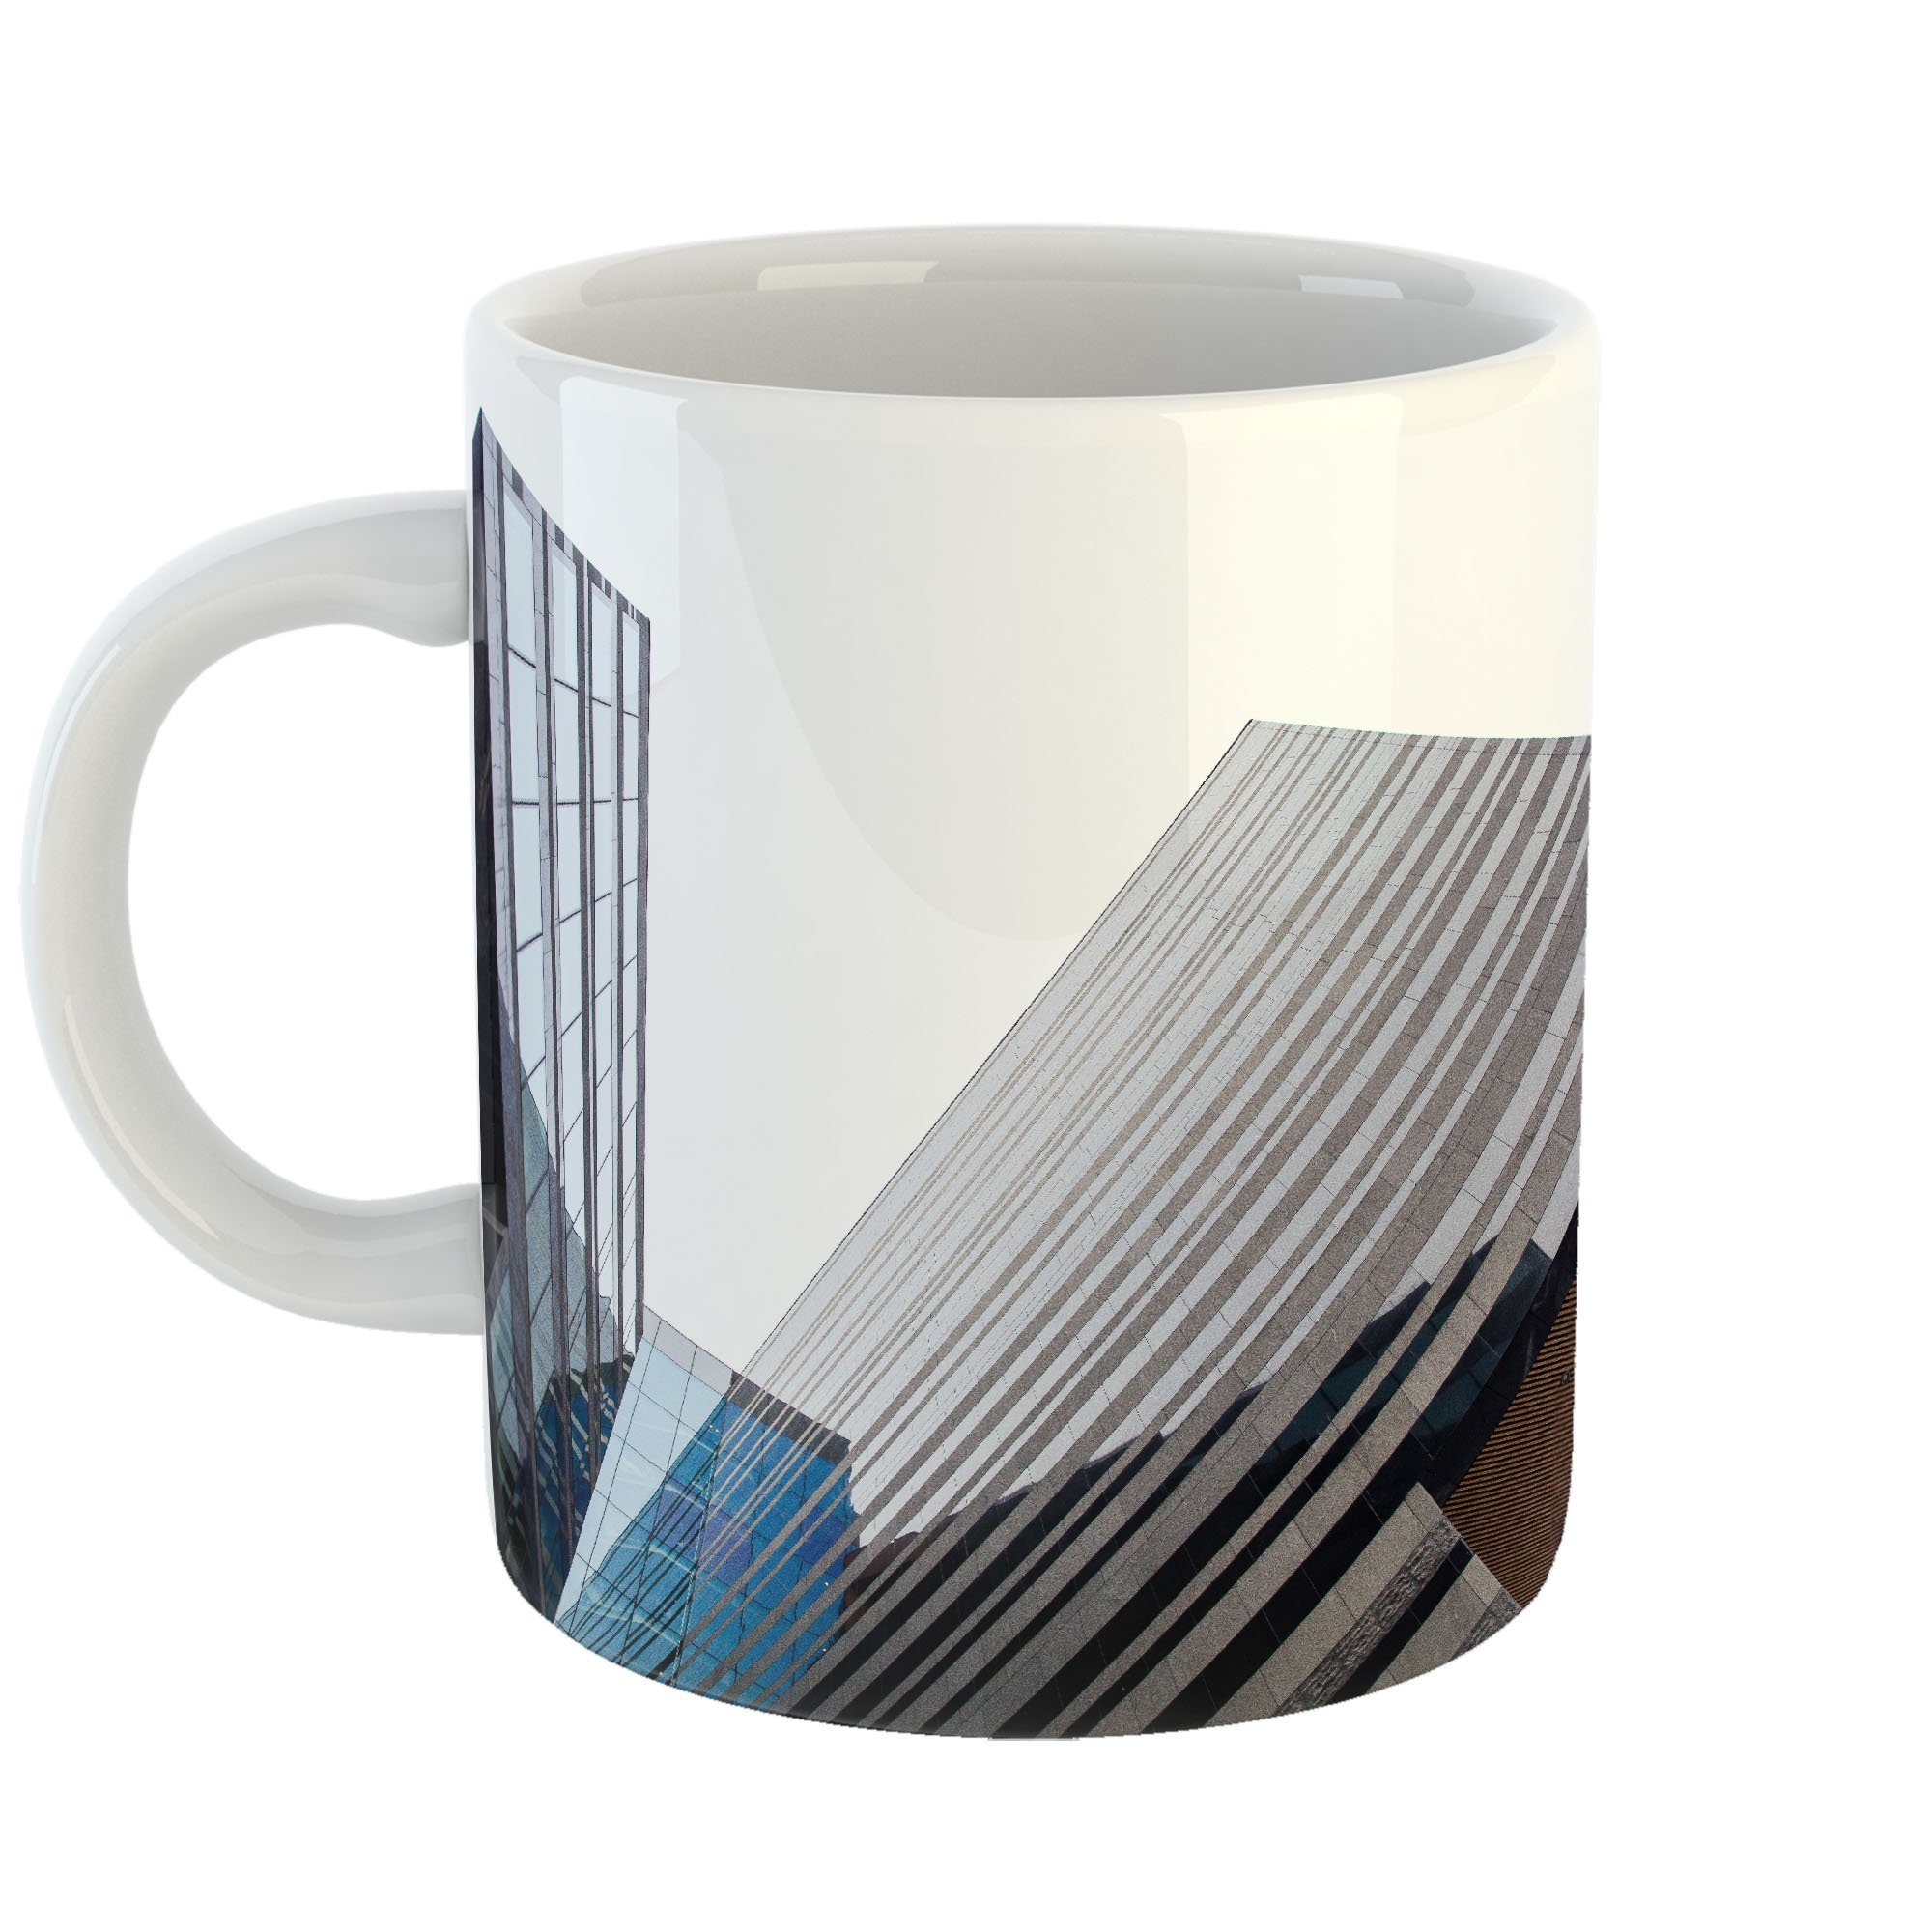 Westlake Art - Hotel Clarion - 11oz Coffee Cup Mug - Modern Picture Photography Artwork Home Office Birthday Gift - 11 Ounce (6732-62F4F)